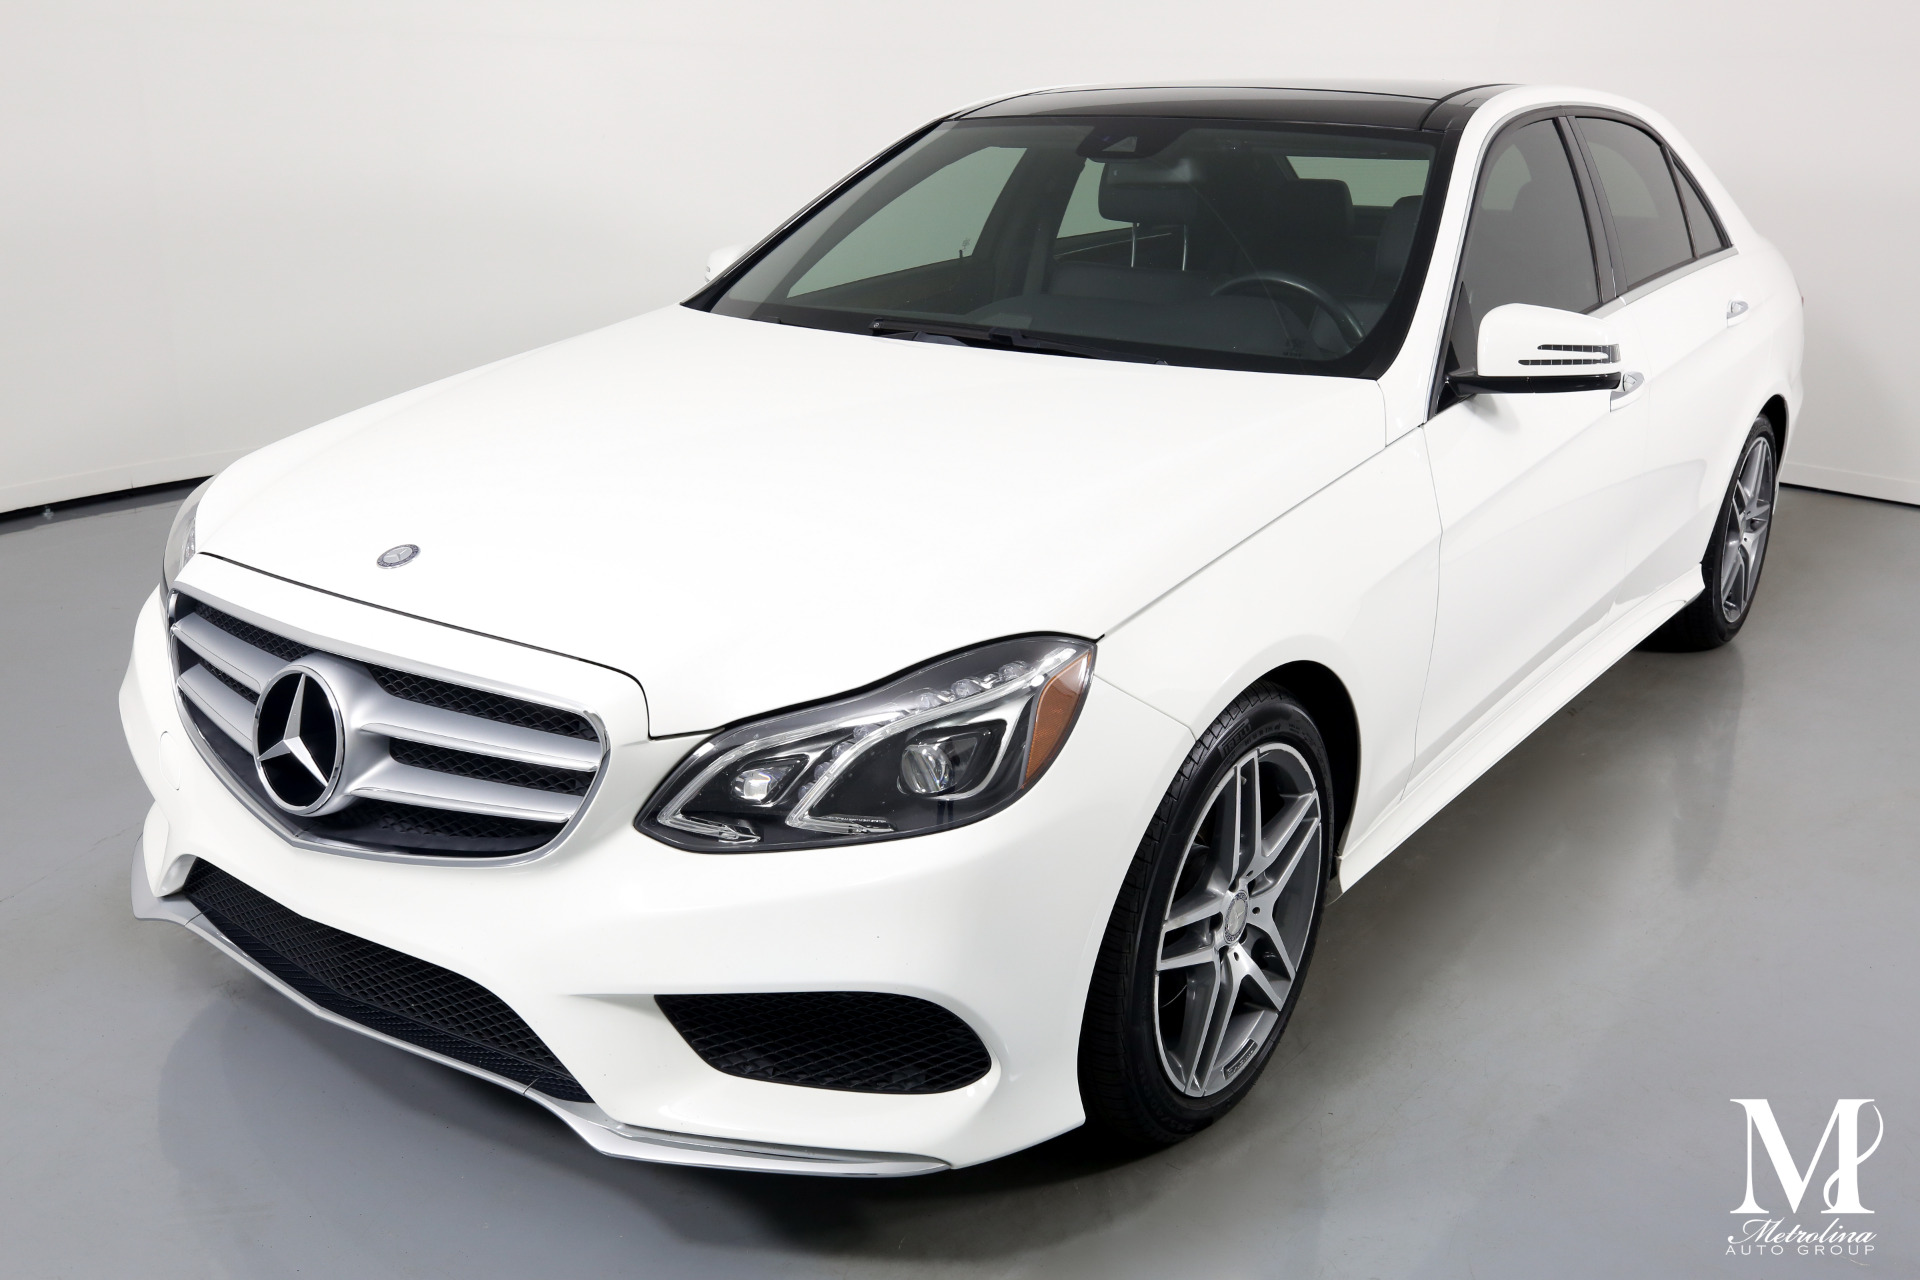 Used 2014 Mercedes-Benz E-Class E 350 Sport 4MATIC for sale $17,996 at Metrolina Auto Group in Charlotte NC 28217 - 4